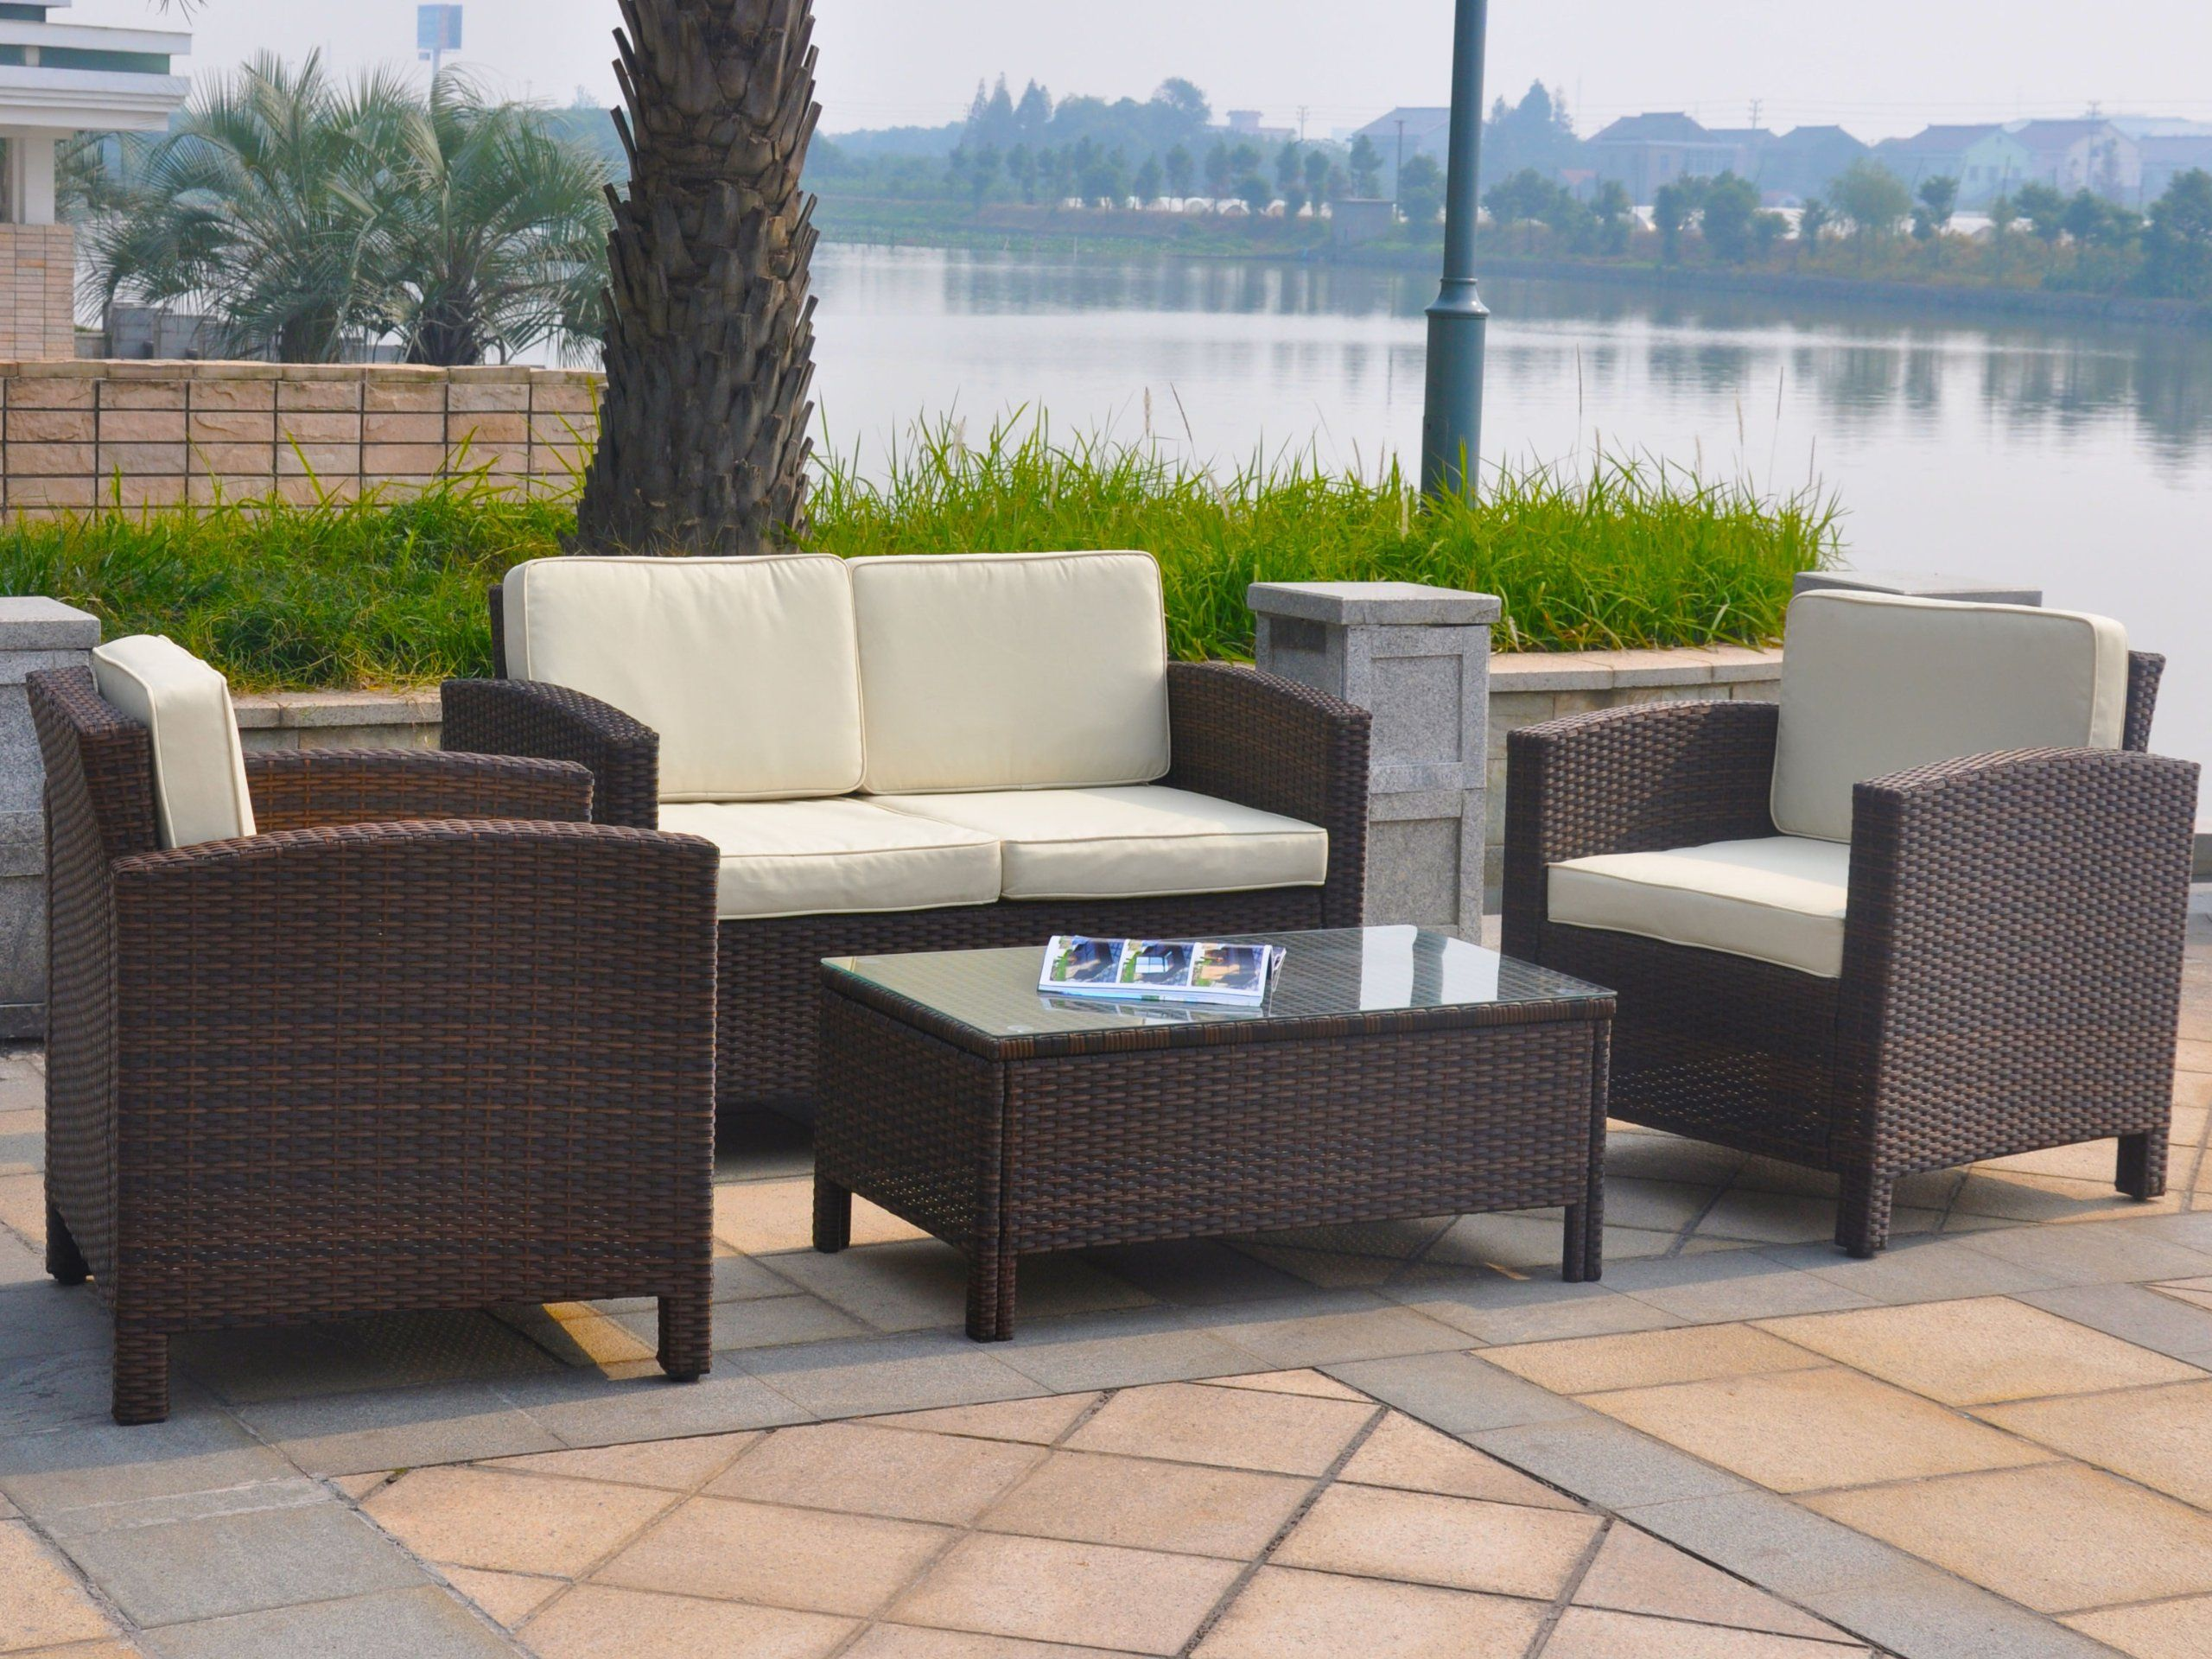 Amazon Gartenmöbel Rattan Amazon De 13tlg Deluxe Lounge Set Gruppe Garnitur Gartenmöbel